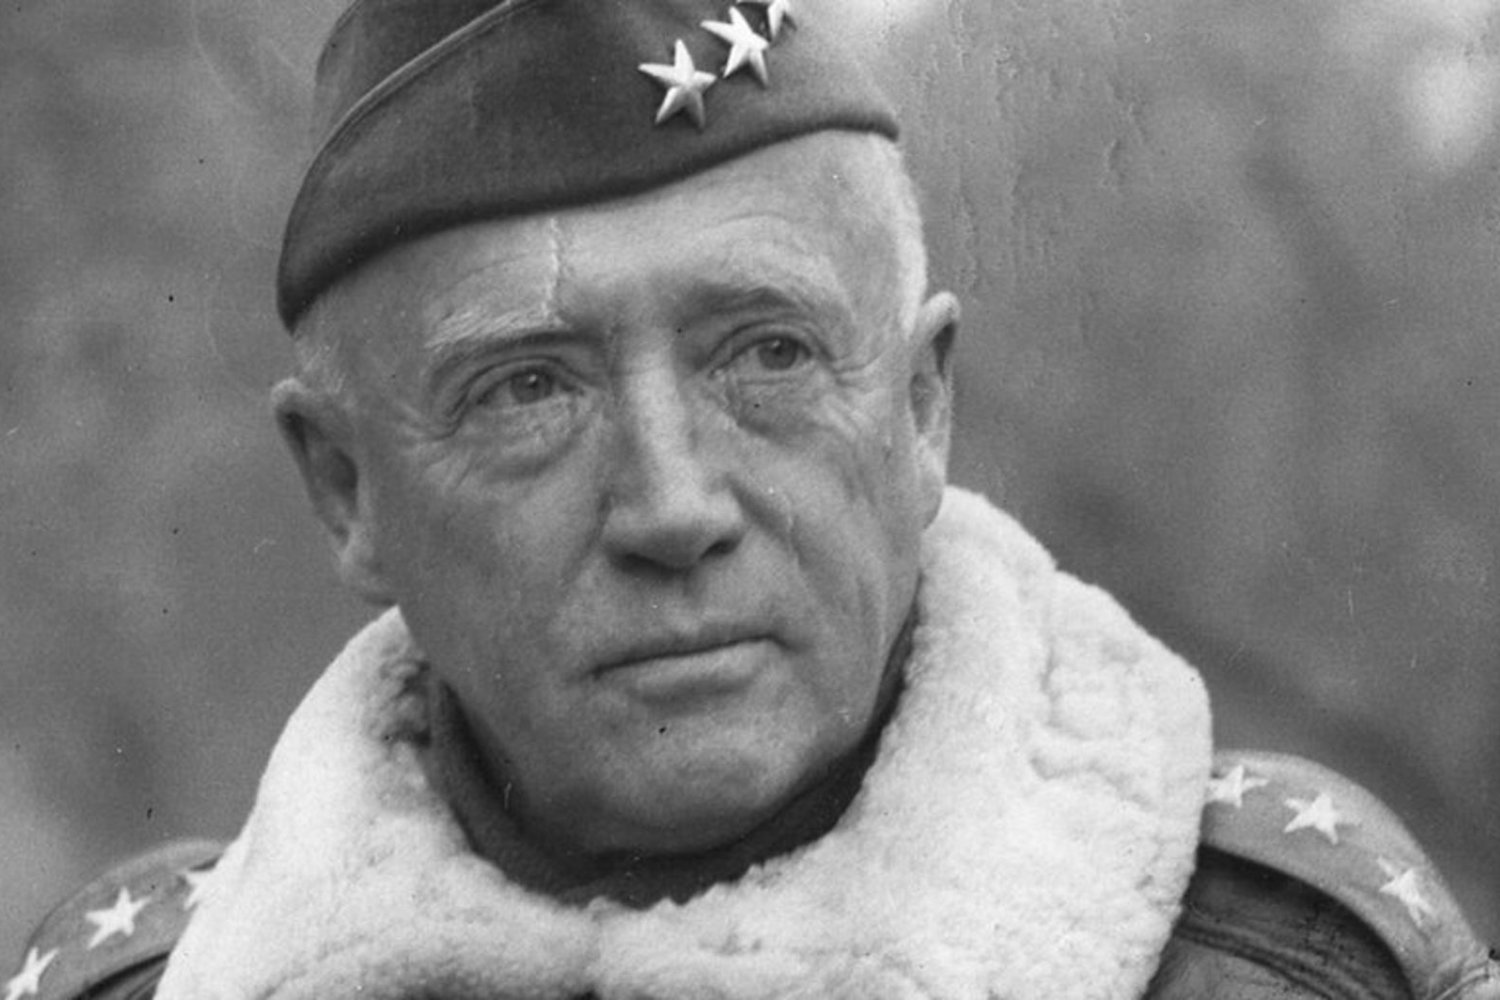 11 General George Patton Quotes That Show His Strategic Awesomeness